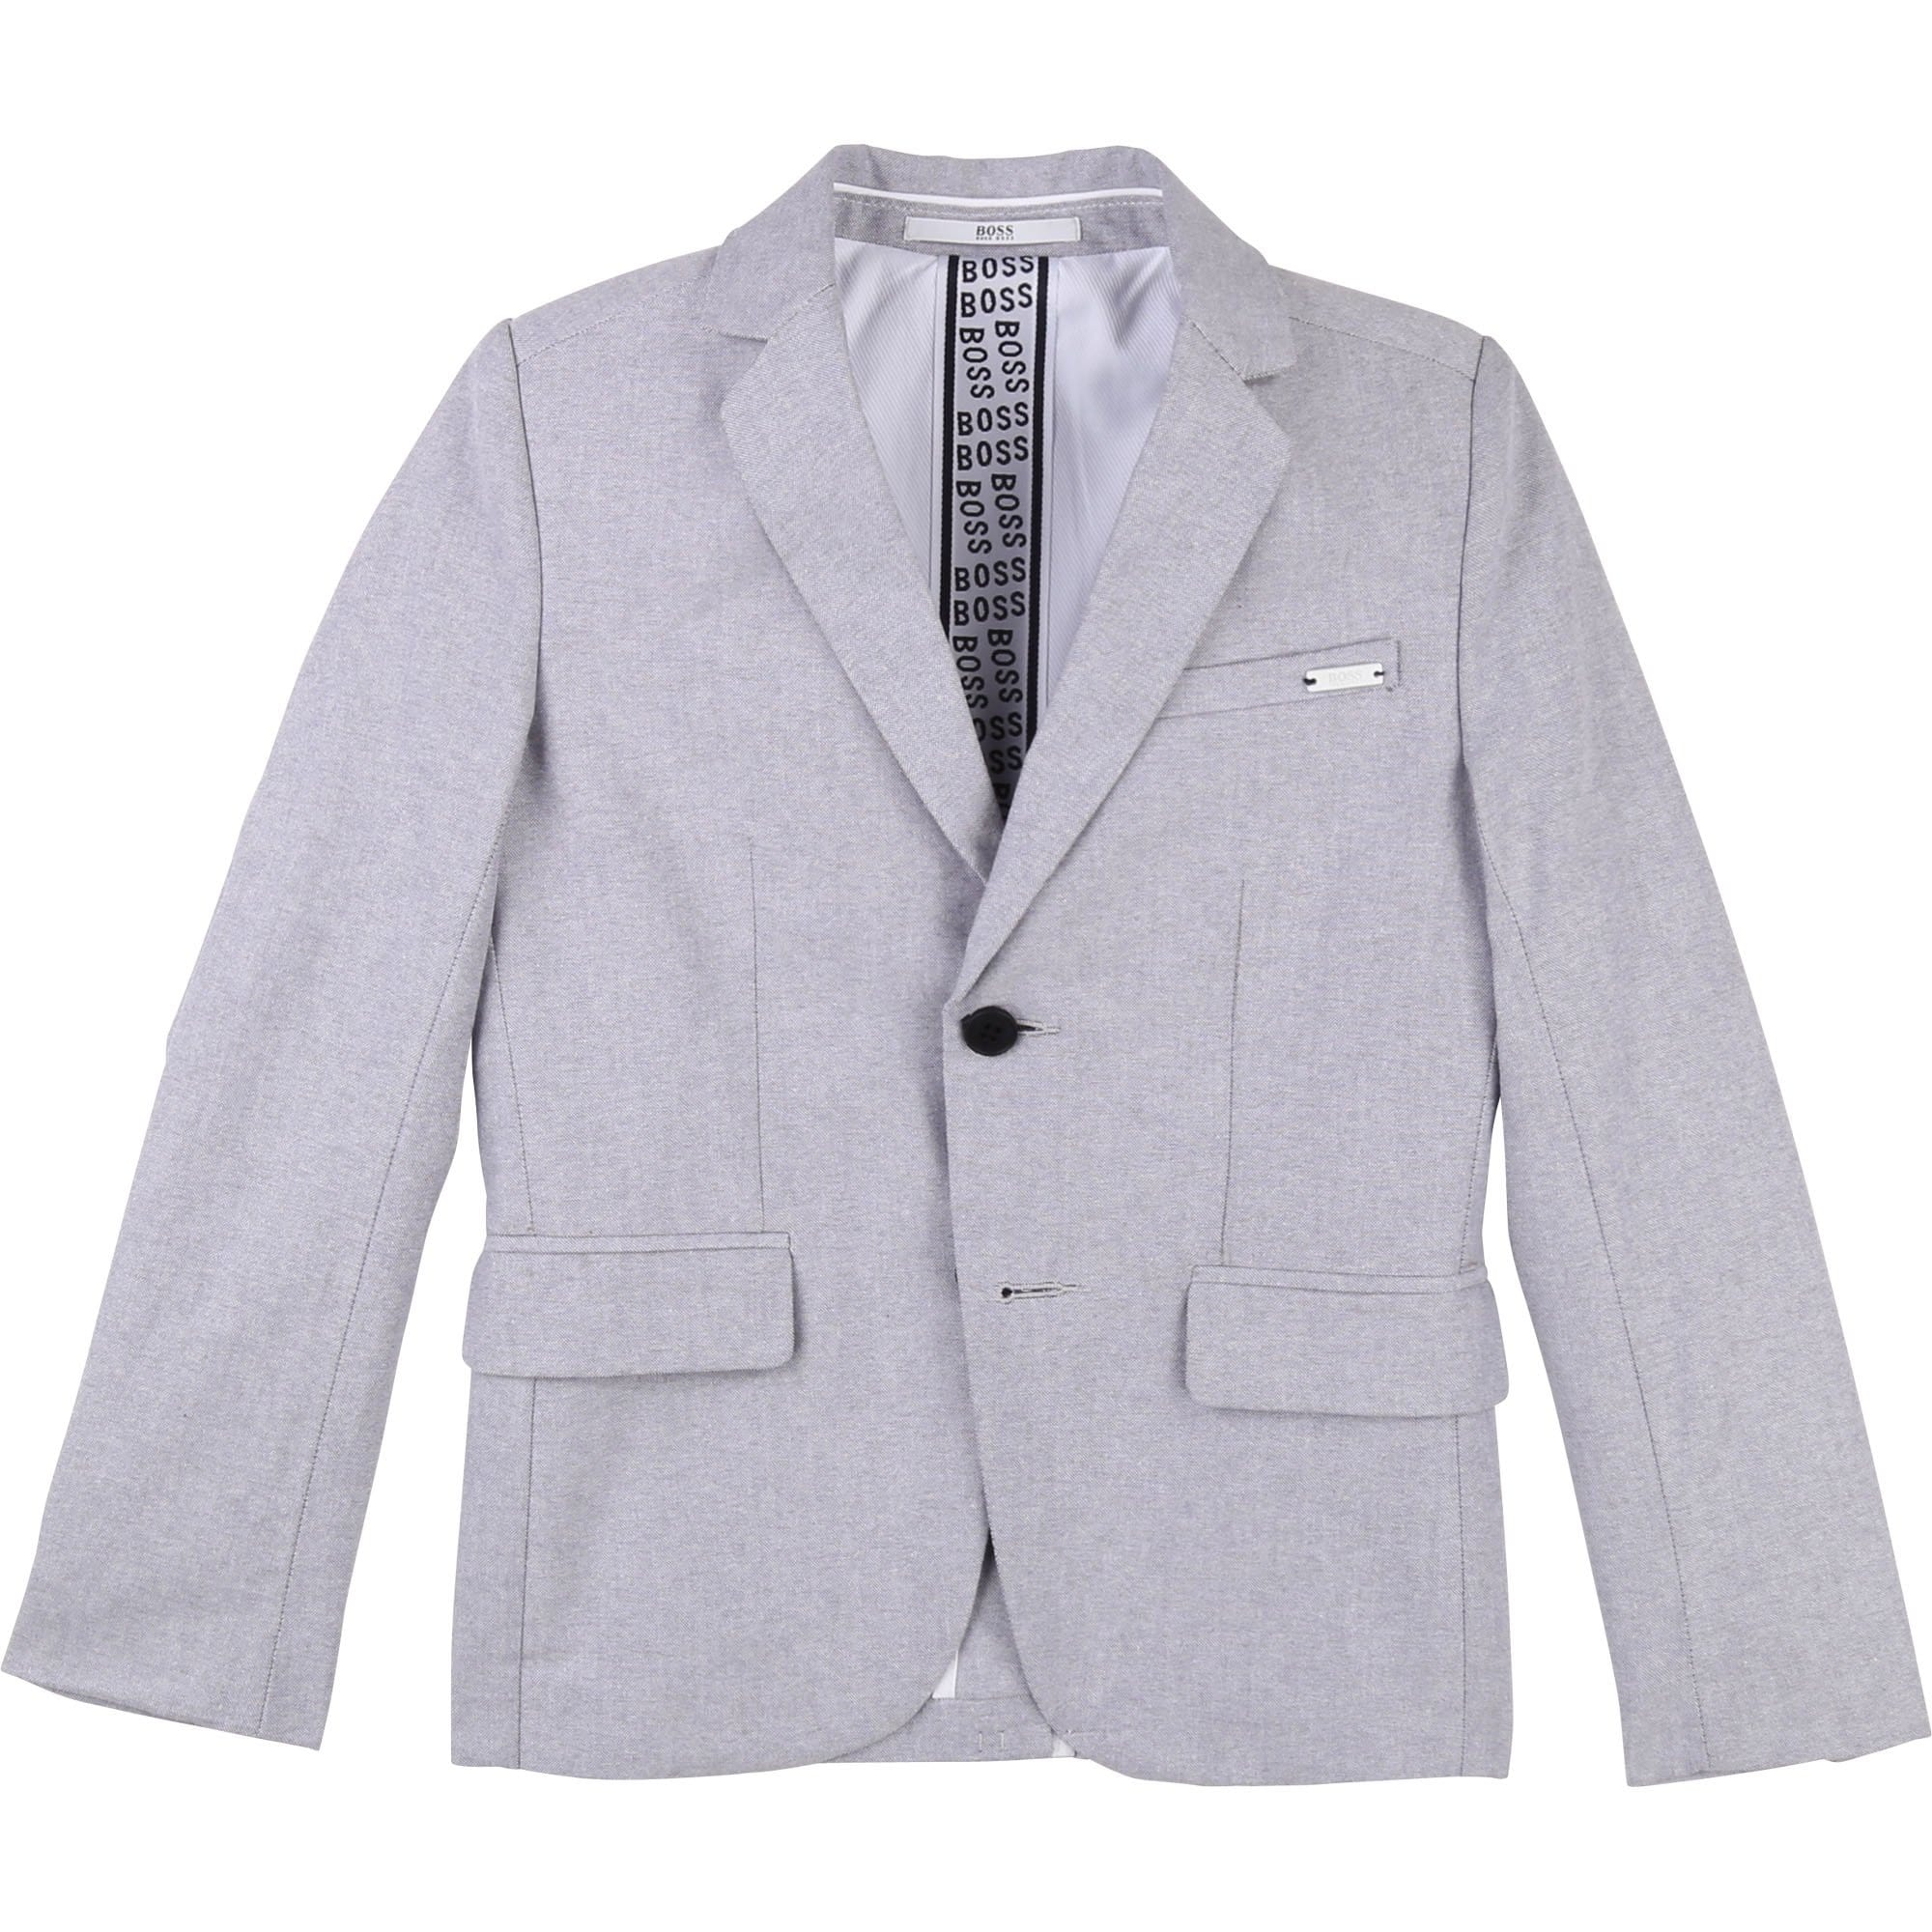 Hugo Boss Pale Blue Suit J26396/Z400